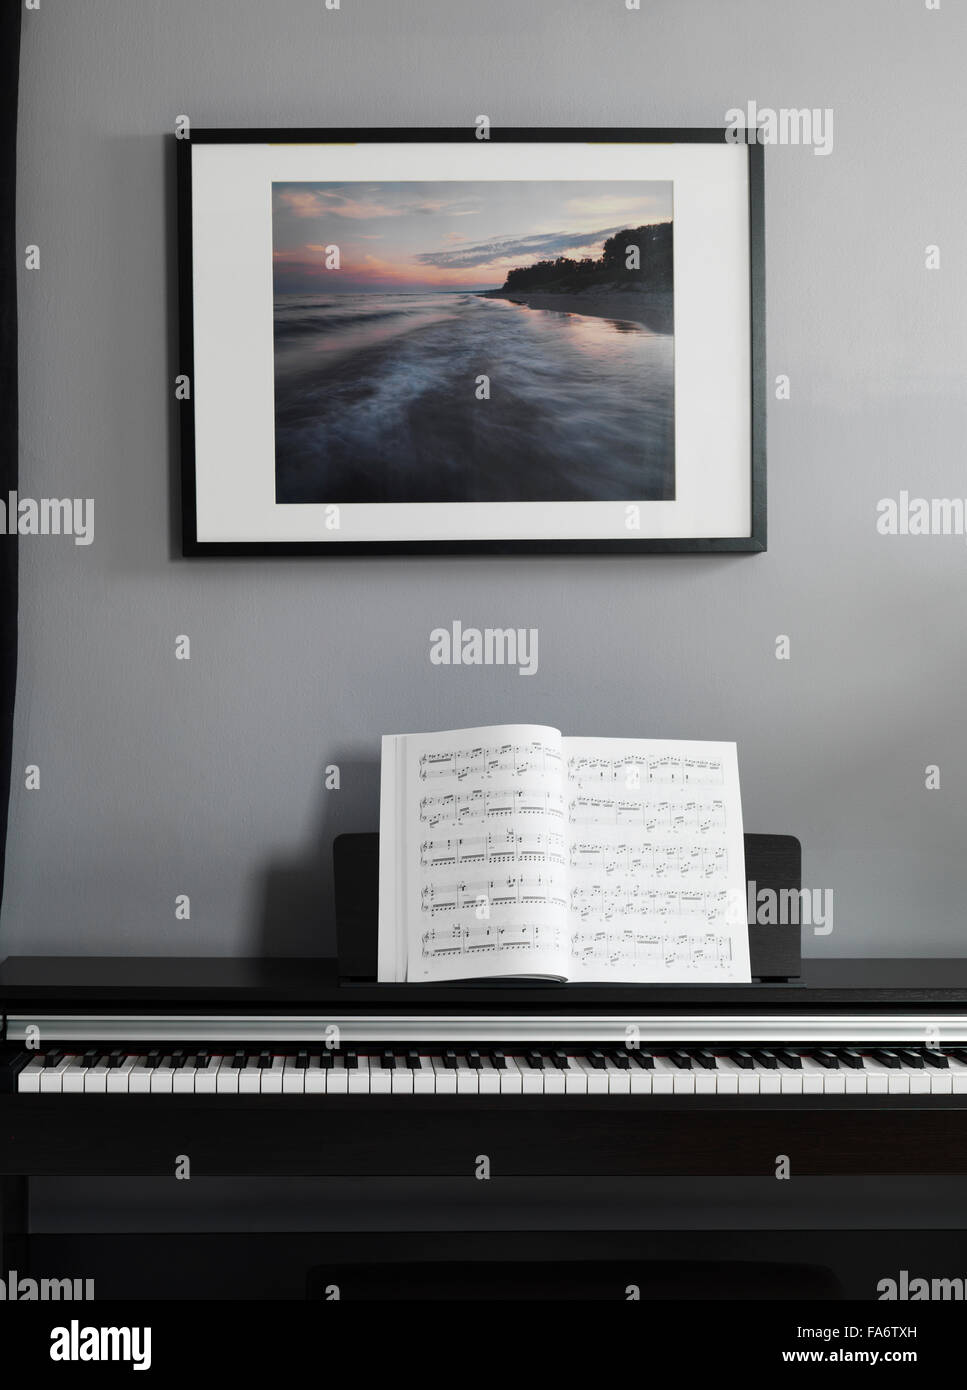 Empty room with chair violin and sheet music on floor photograph - Digital Piano Keyboard With Music Scores In A Room Interior Stock Image